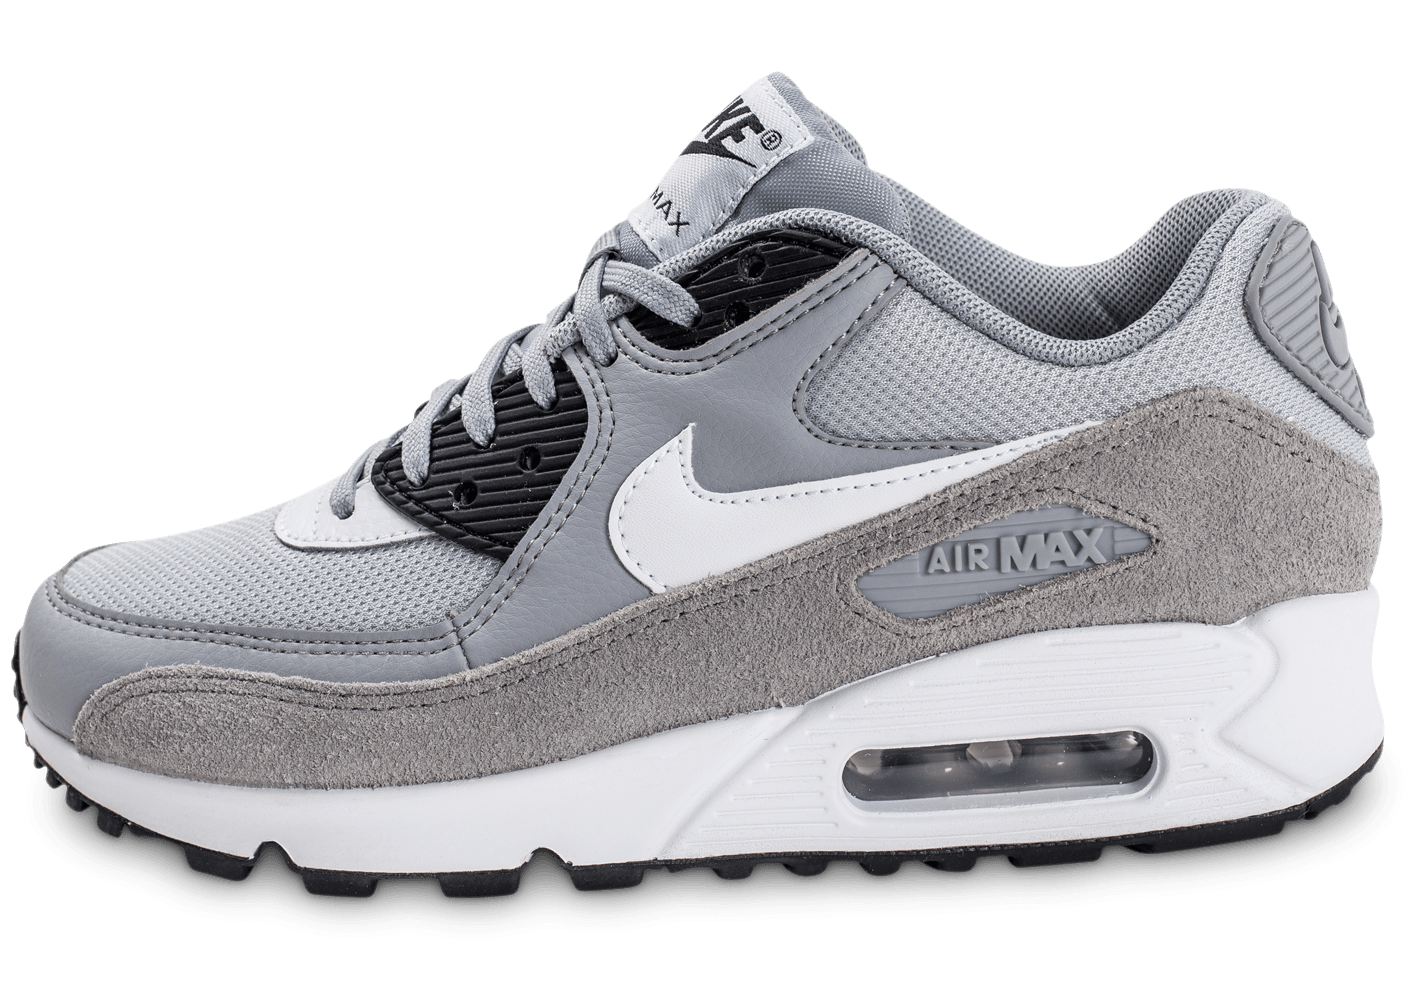 nike air max 90 w grise chaussures femme chausport. Black Bedroom Furniture Sets. Home Design Ideas